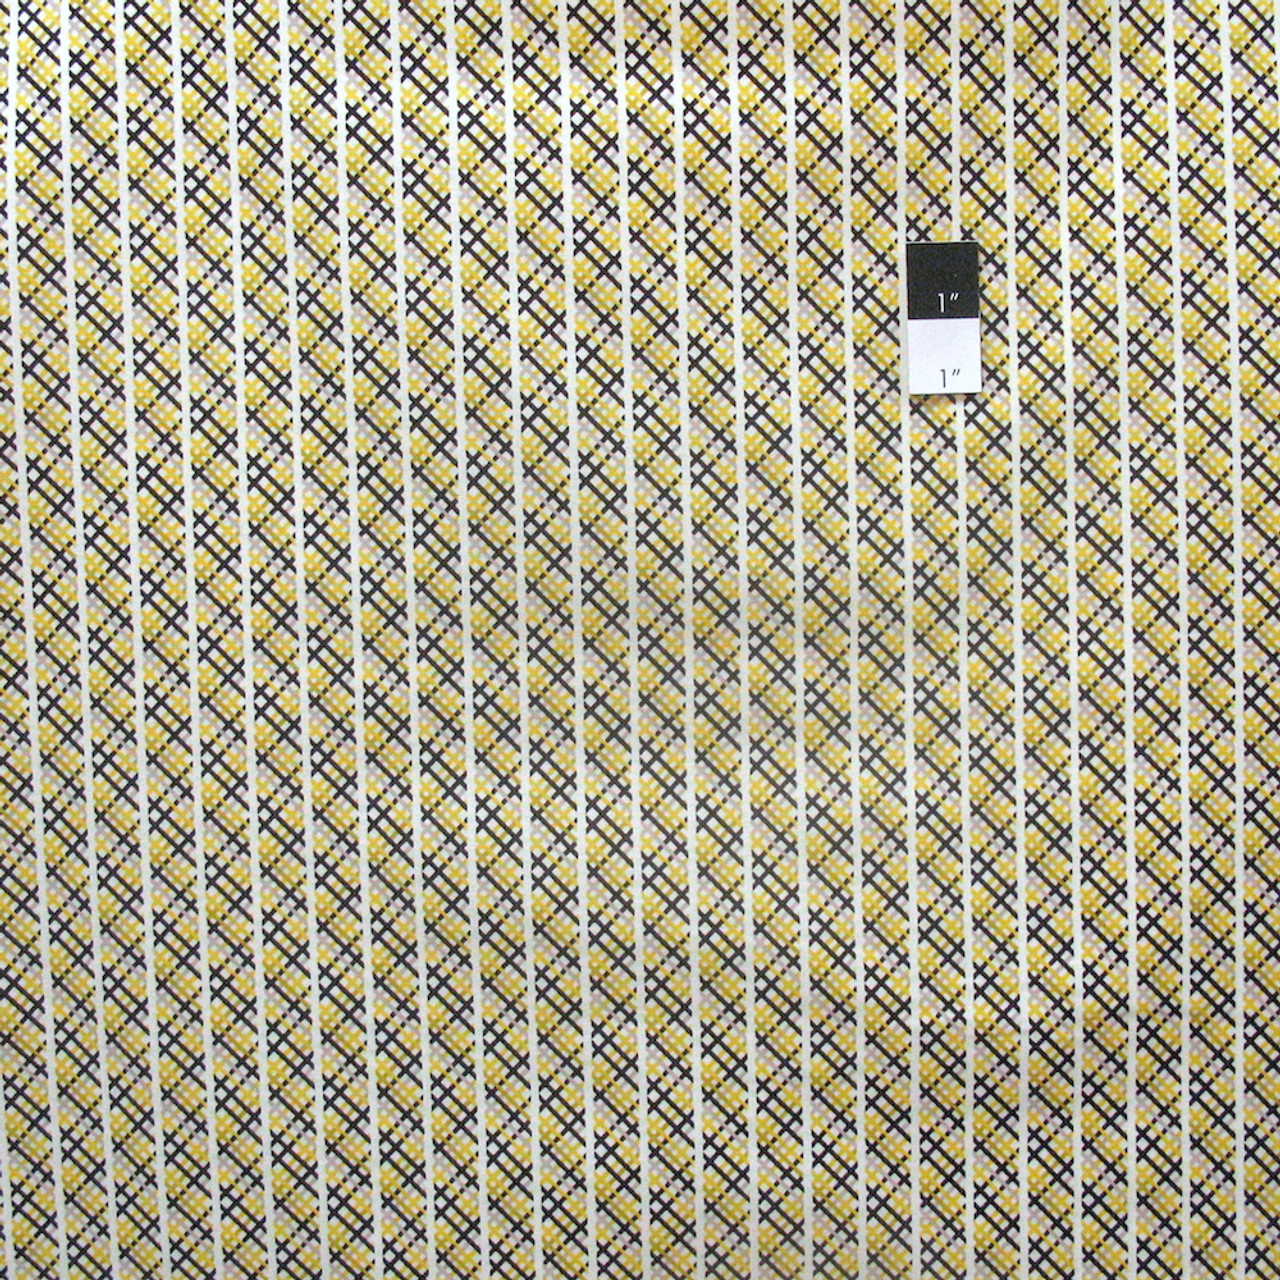 Denyse Schmidt Hadley Multi Plaid Fabric in Sunflower PWDS076 100/% Cotton